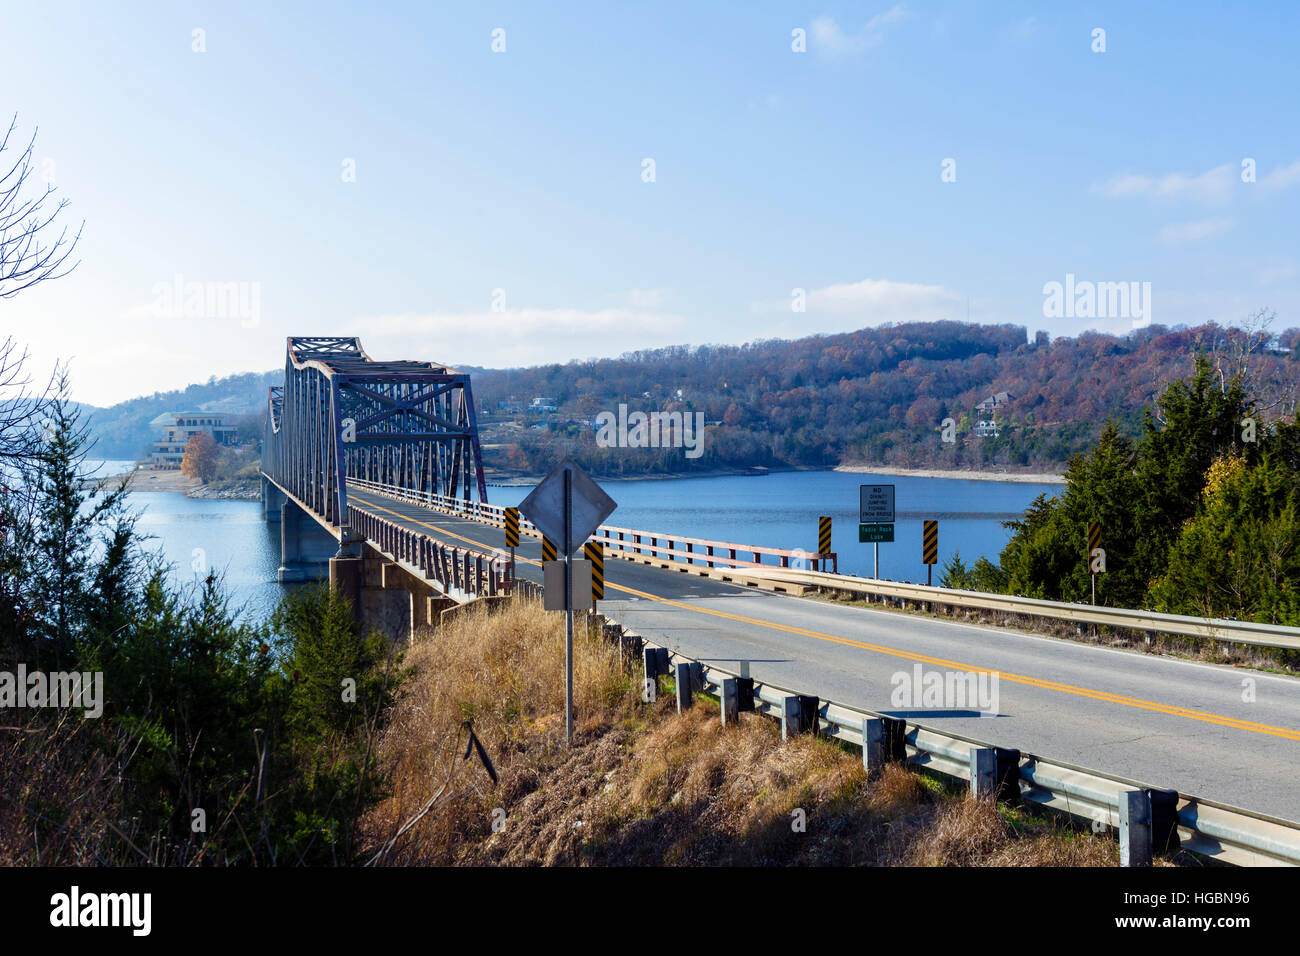 Pont sur le MO-86 crossing Table Rock Lake, Ridgedale, Ozarks, Missouri, États-Unis Photo Stock